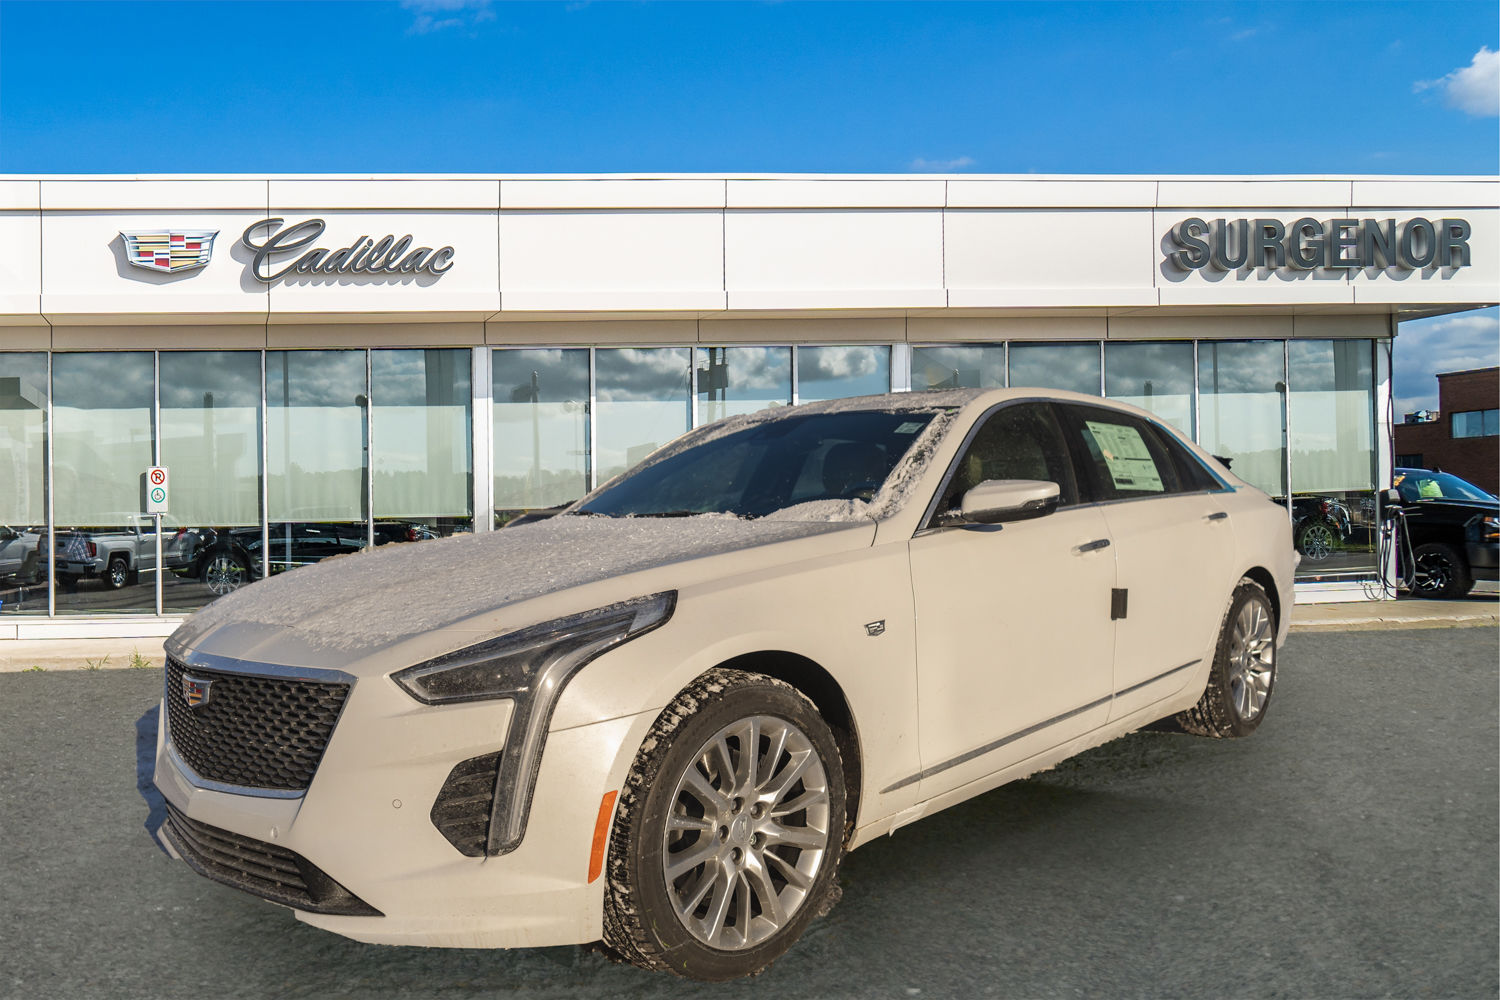 New 2019 Cadillac CT6 Luxury for Sale - $56365.0 ...